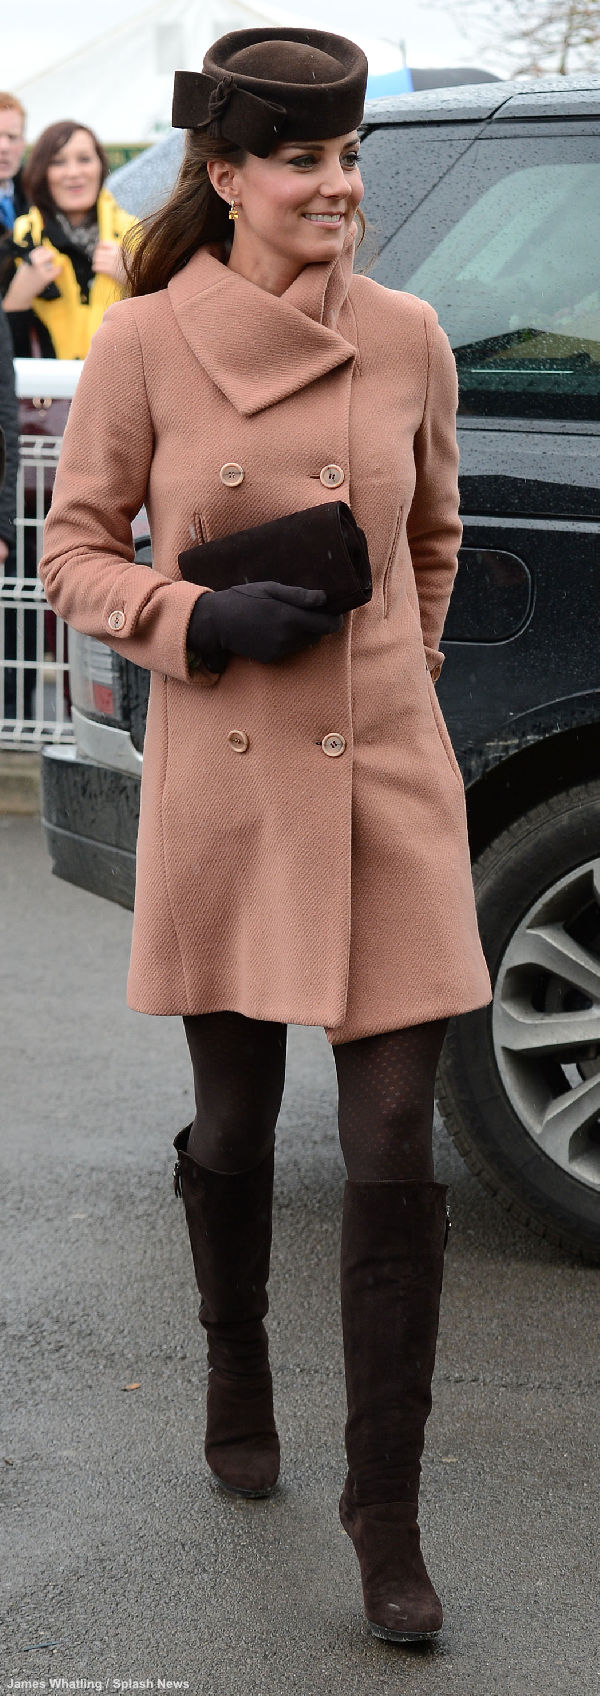 Kate Middleton wearing the Stuart Weitzman Zipkin boots at the Cheltenham Festival in 2013